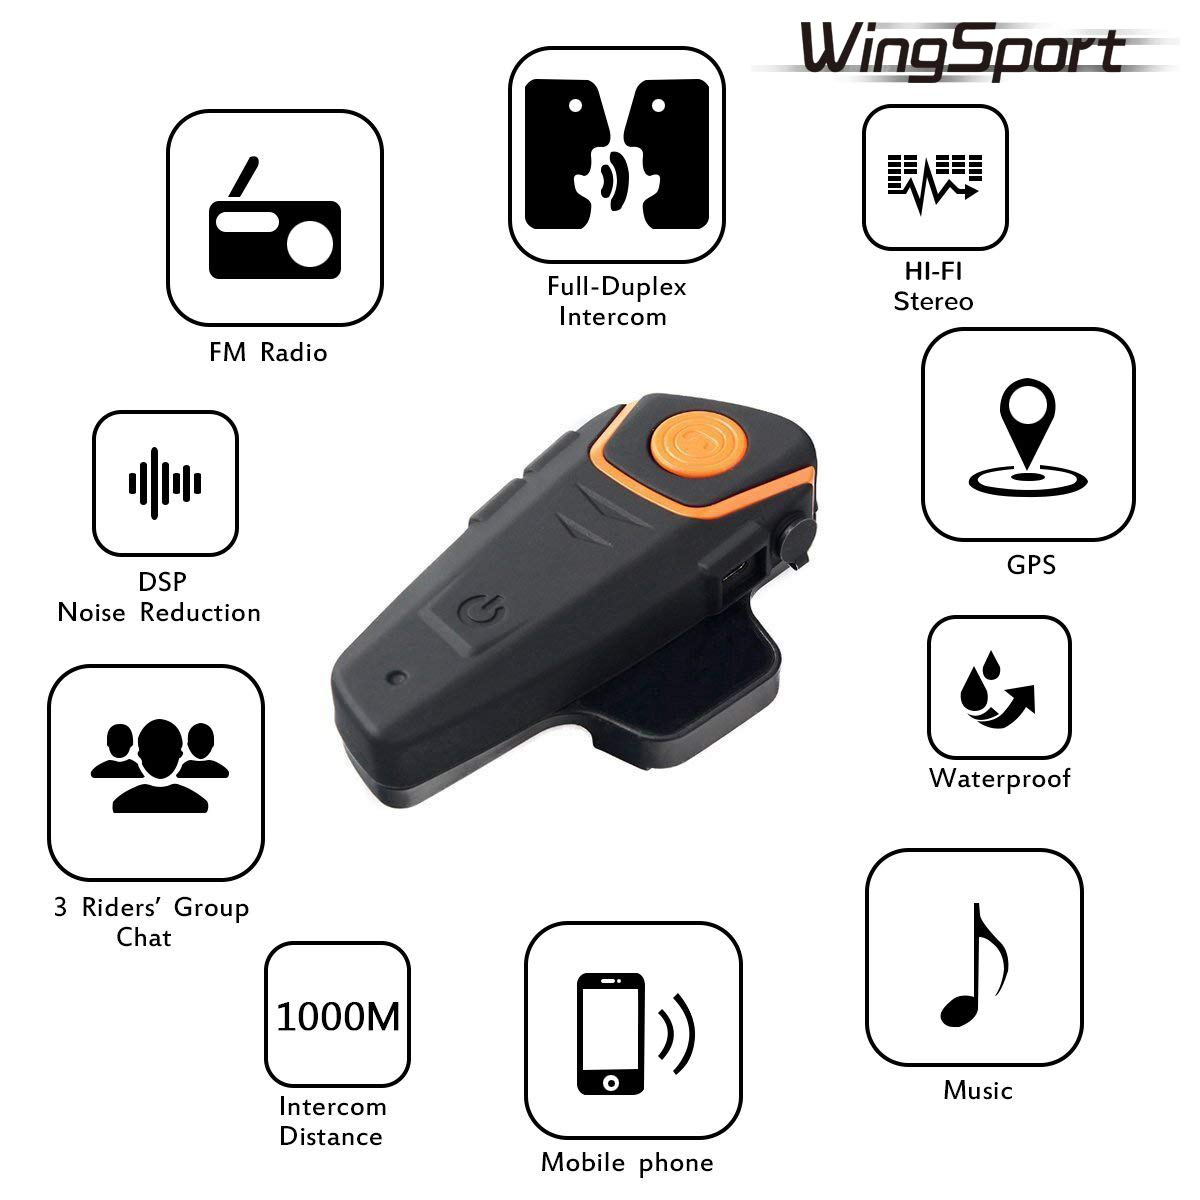 bdeb601cc09 ... WingSport BT-S2 Motorcycle Helmet Bluetooth Headset Intercom  Communication Headset Waterproof Wireless Interphone Walkie Talkie ...